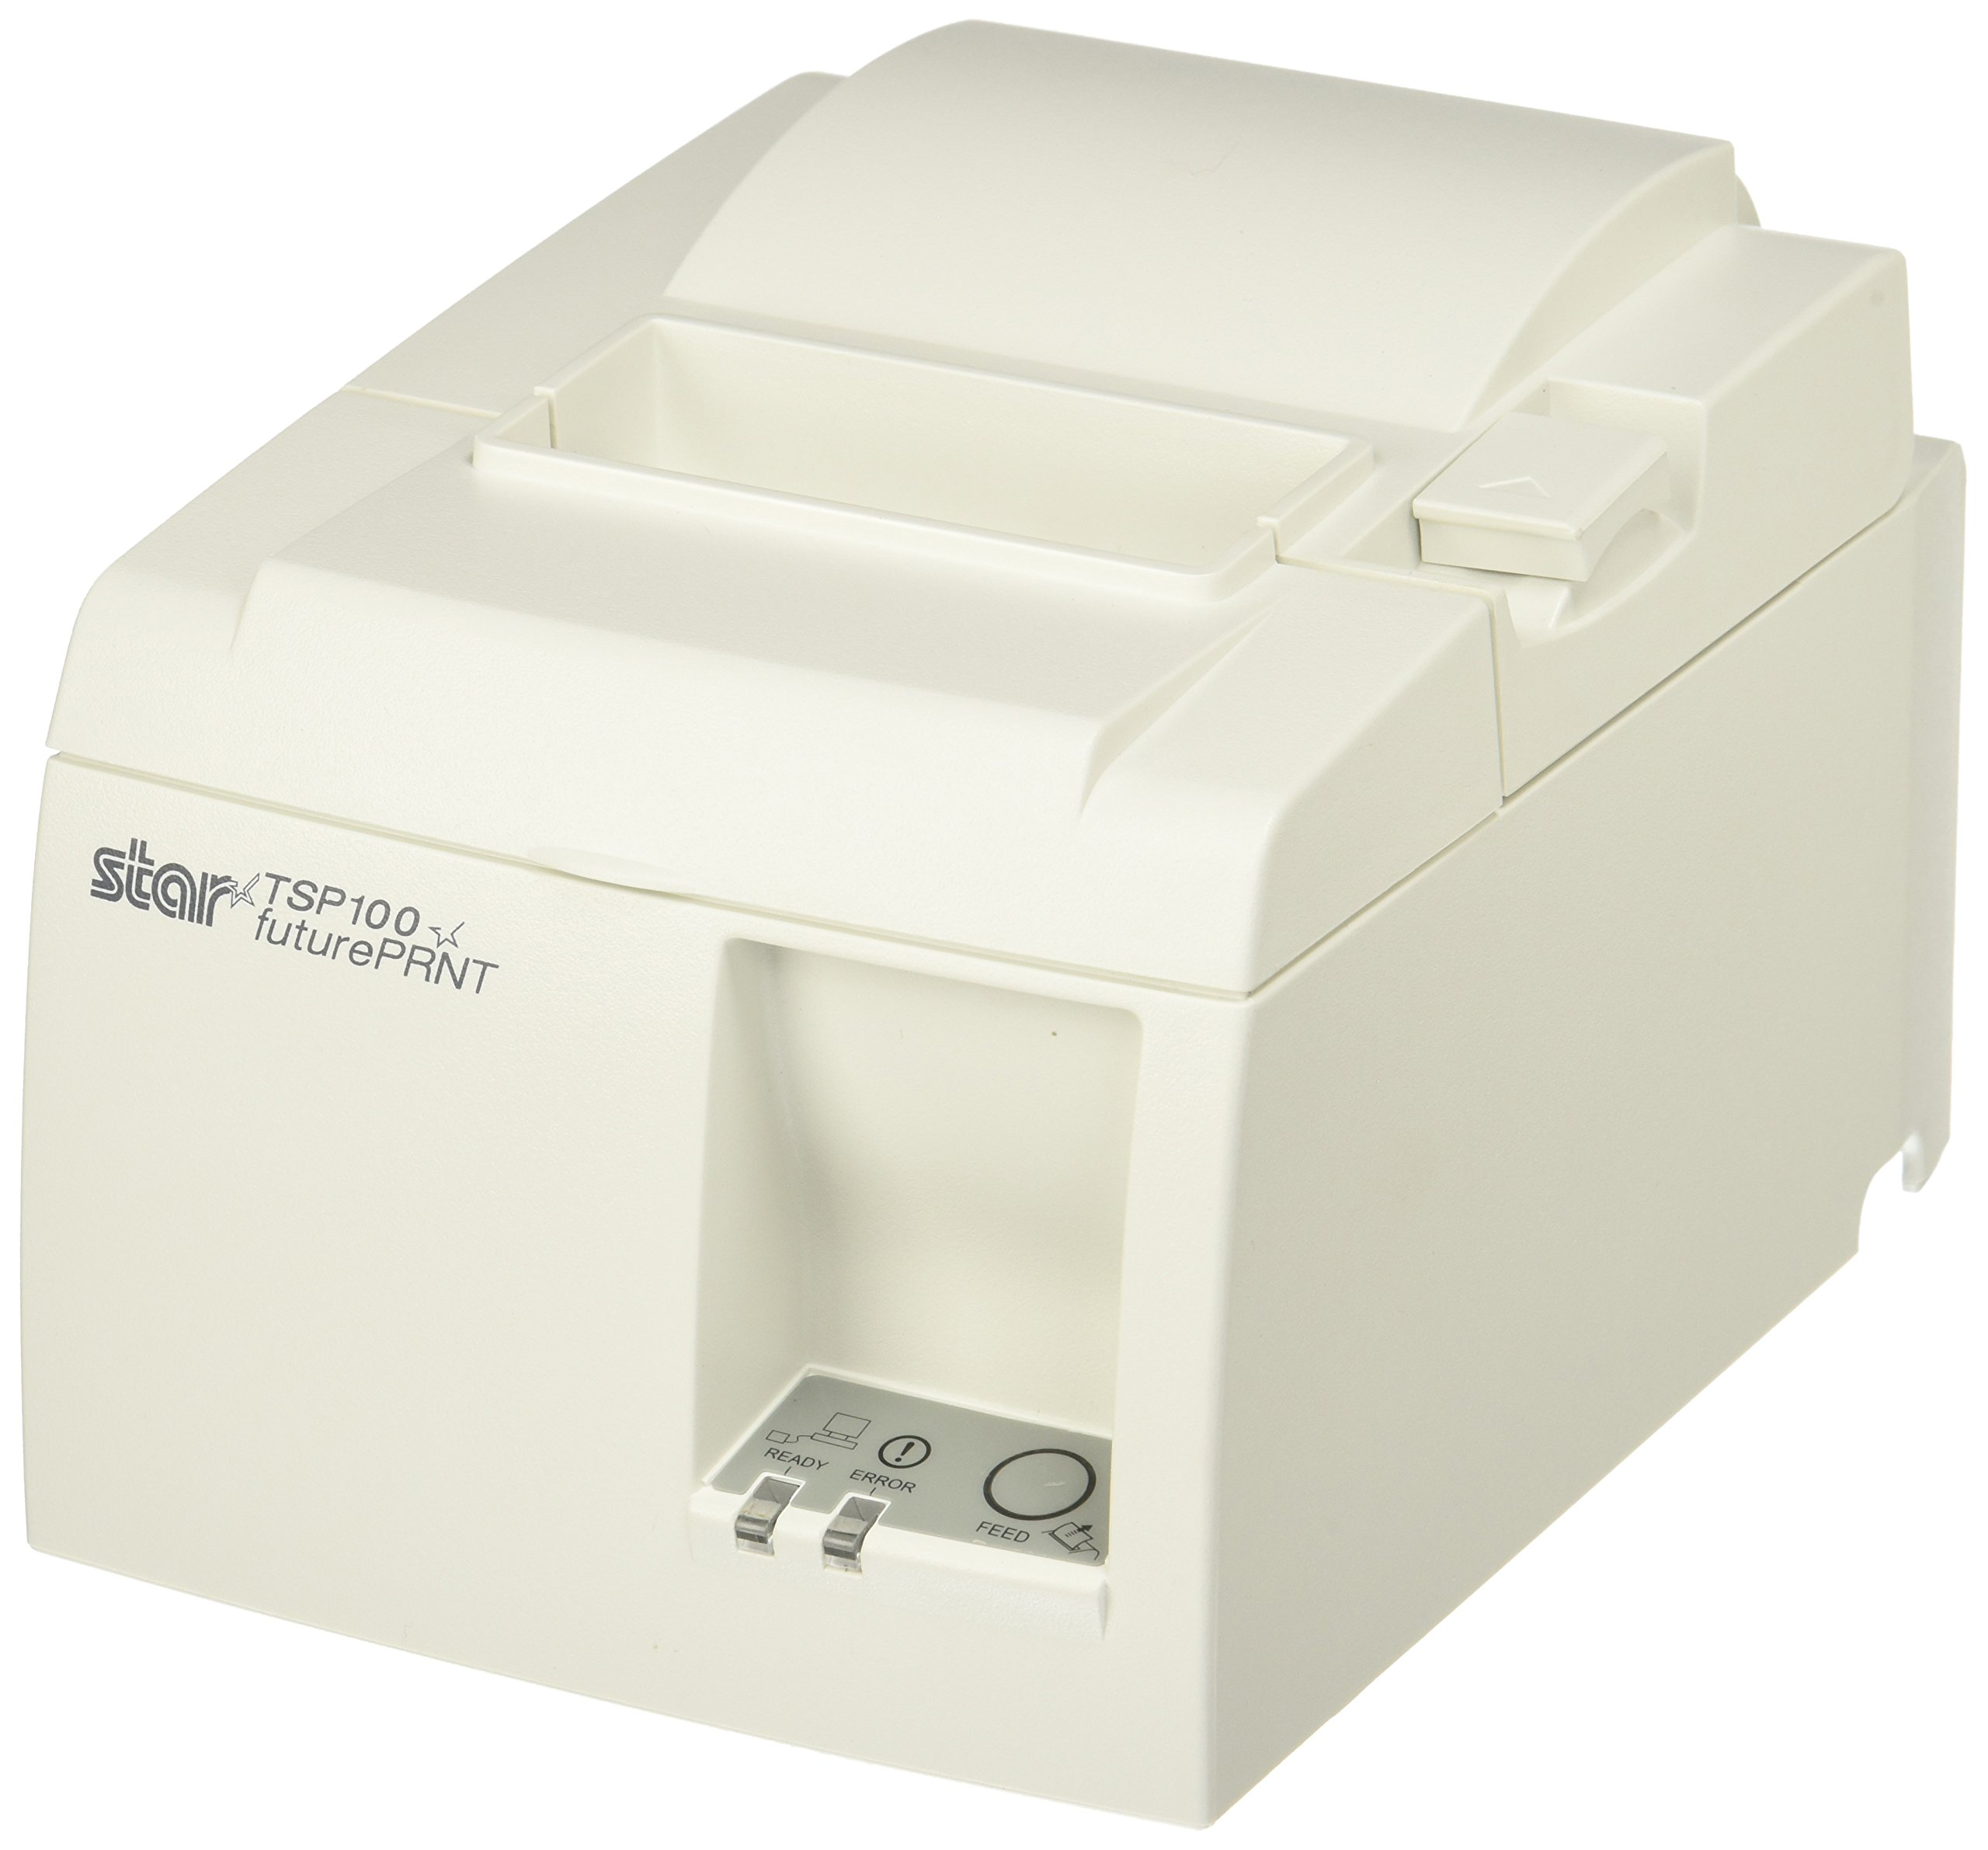 Star Micronics, TSP143L WHT US, Thermal Receipt Printer, Ethernet (cable incl.), Auto Cutter, Internal Power Supply with Power Cable Incl. by Star Micronics